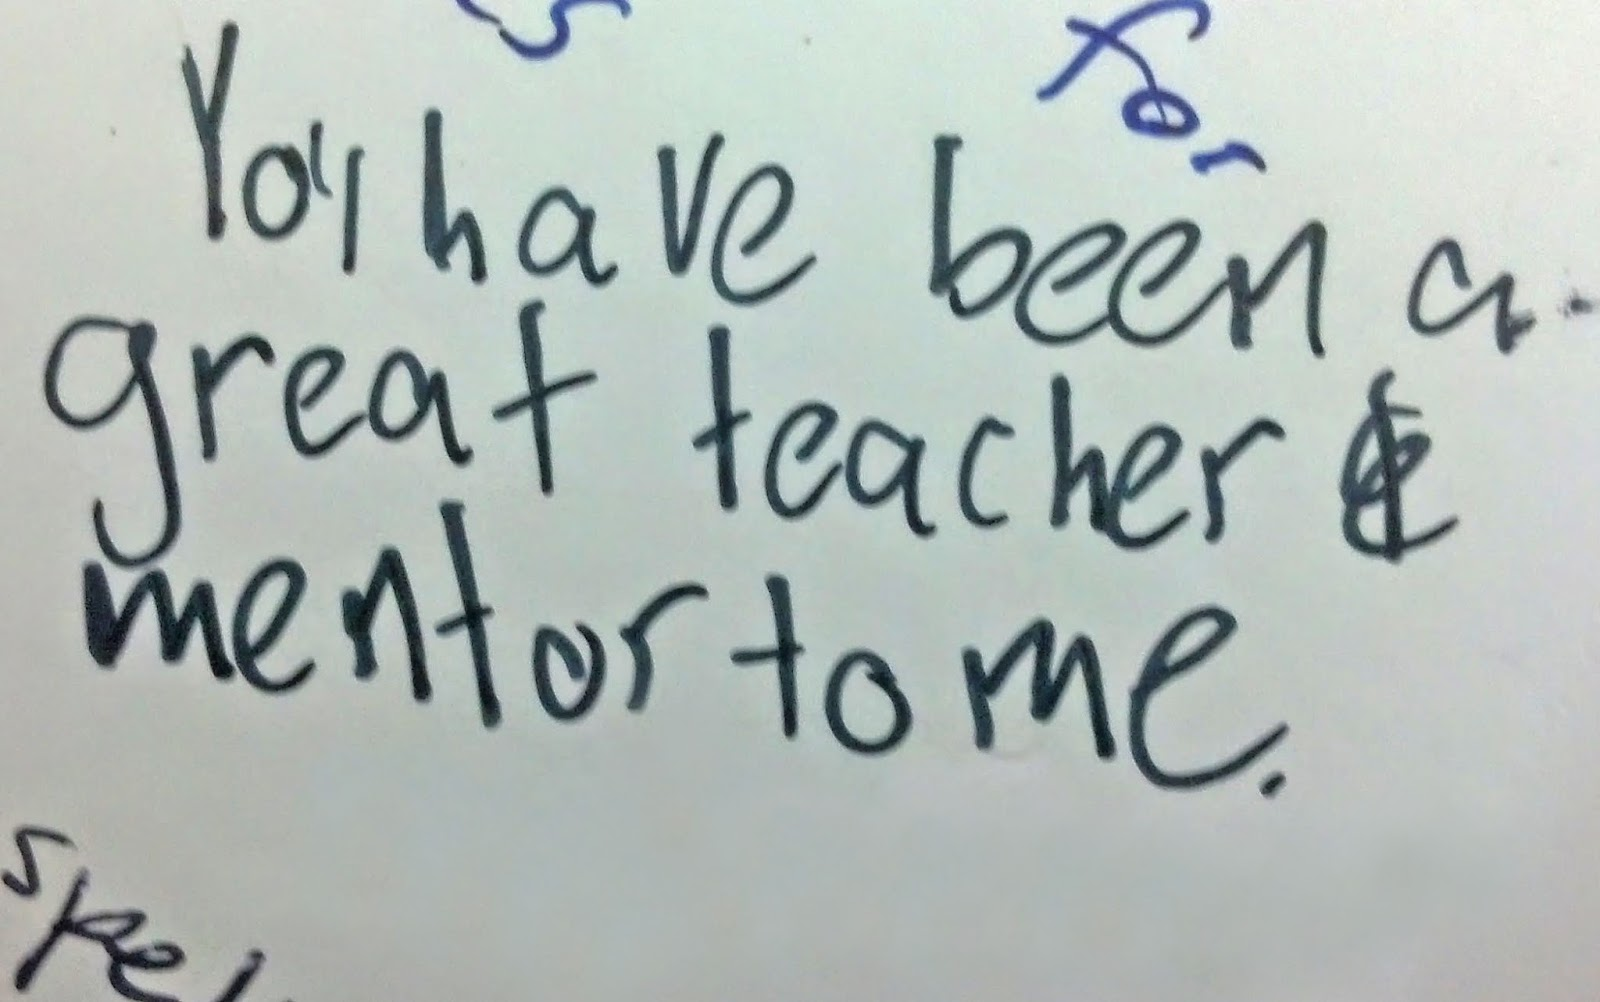 Yearbook Memento Student Comment (Created for Learning)